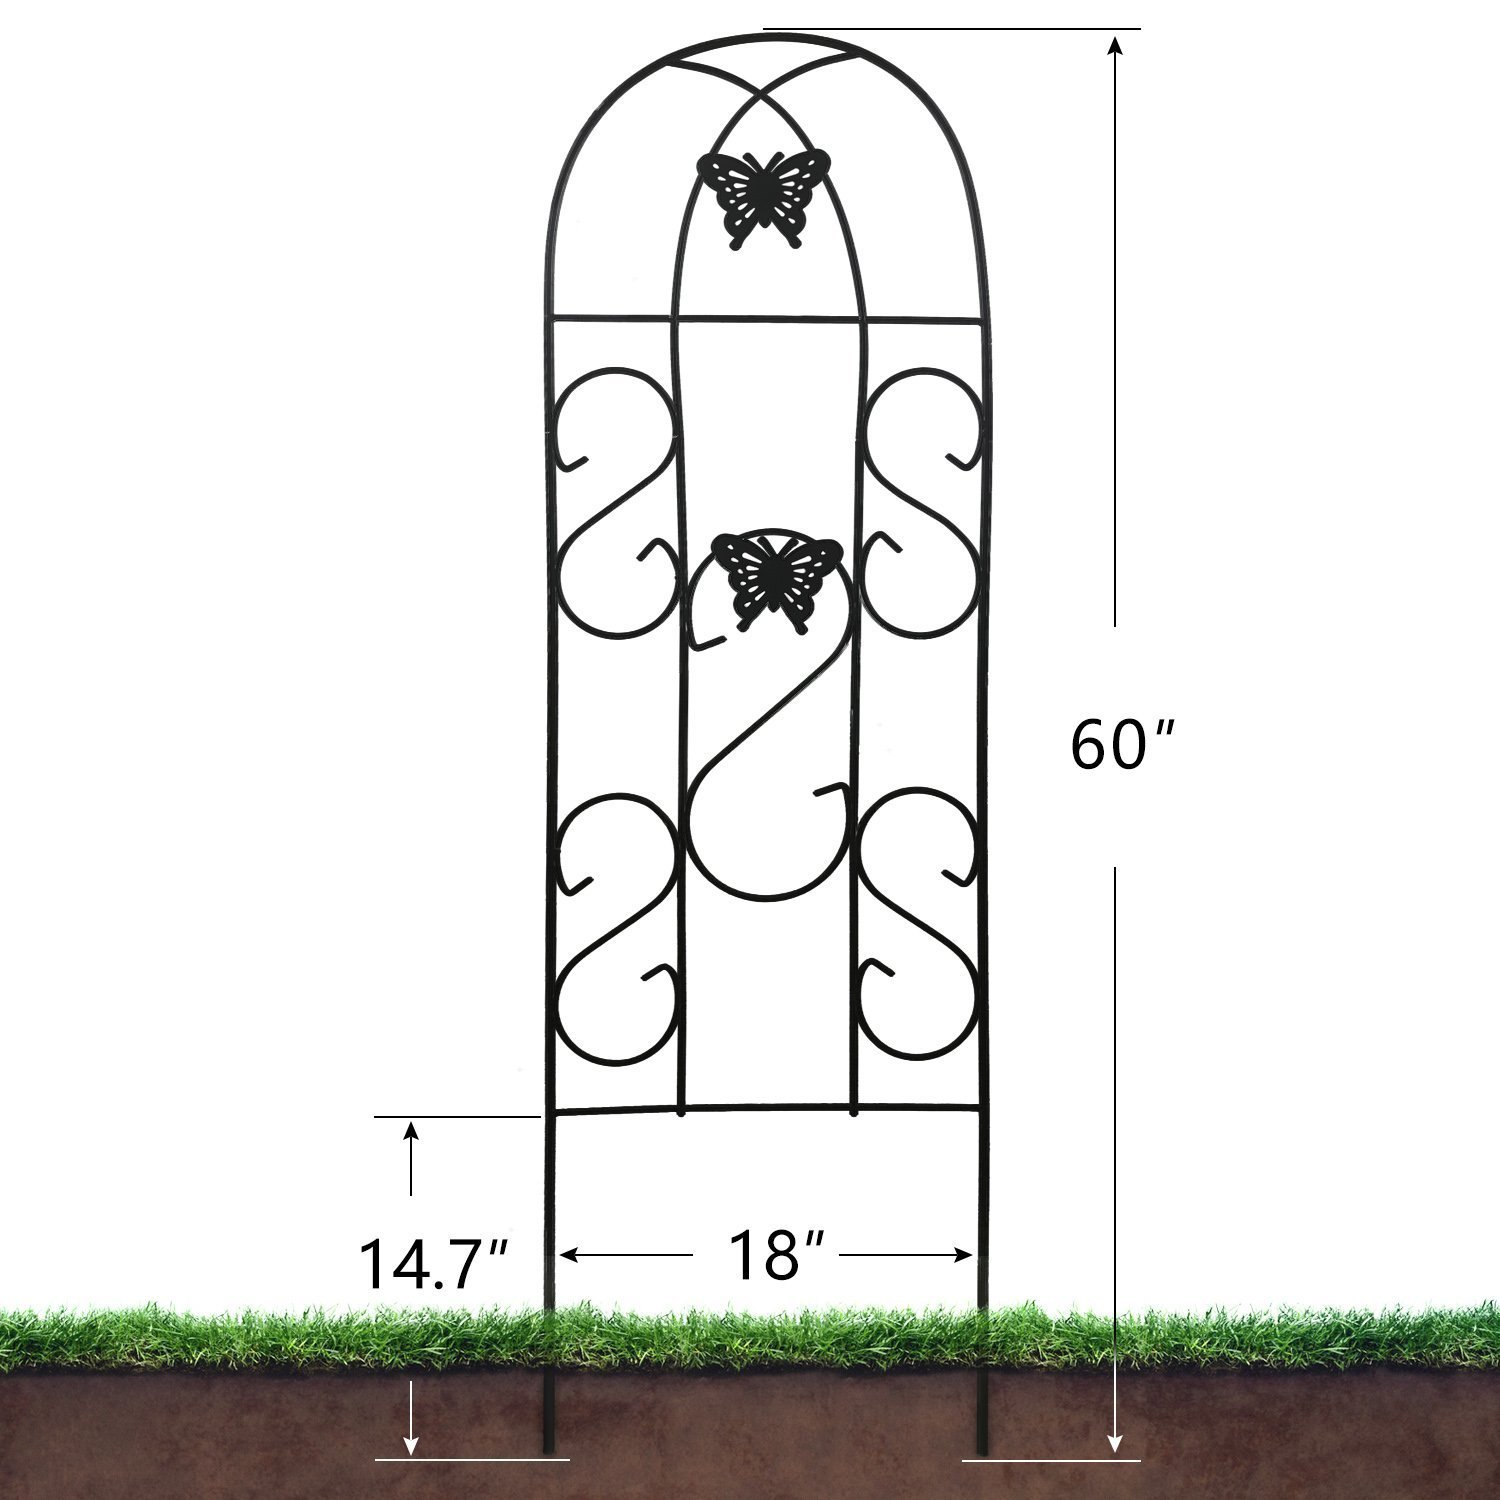 4 Pack Garden Trellis for Climbing Plants 60 x 18 Rustproof Sturdy Black Iron Trellis for Potted Plant Support Butterfly Metal Trellises for Climbing Roses Vines Flower Vegetables Cucumber Clematis